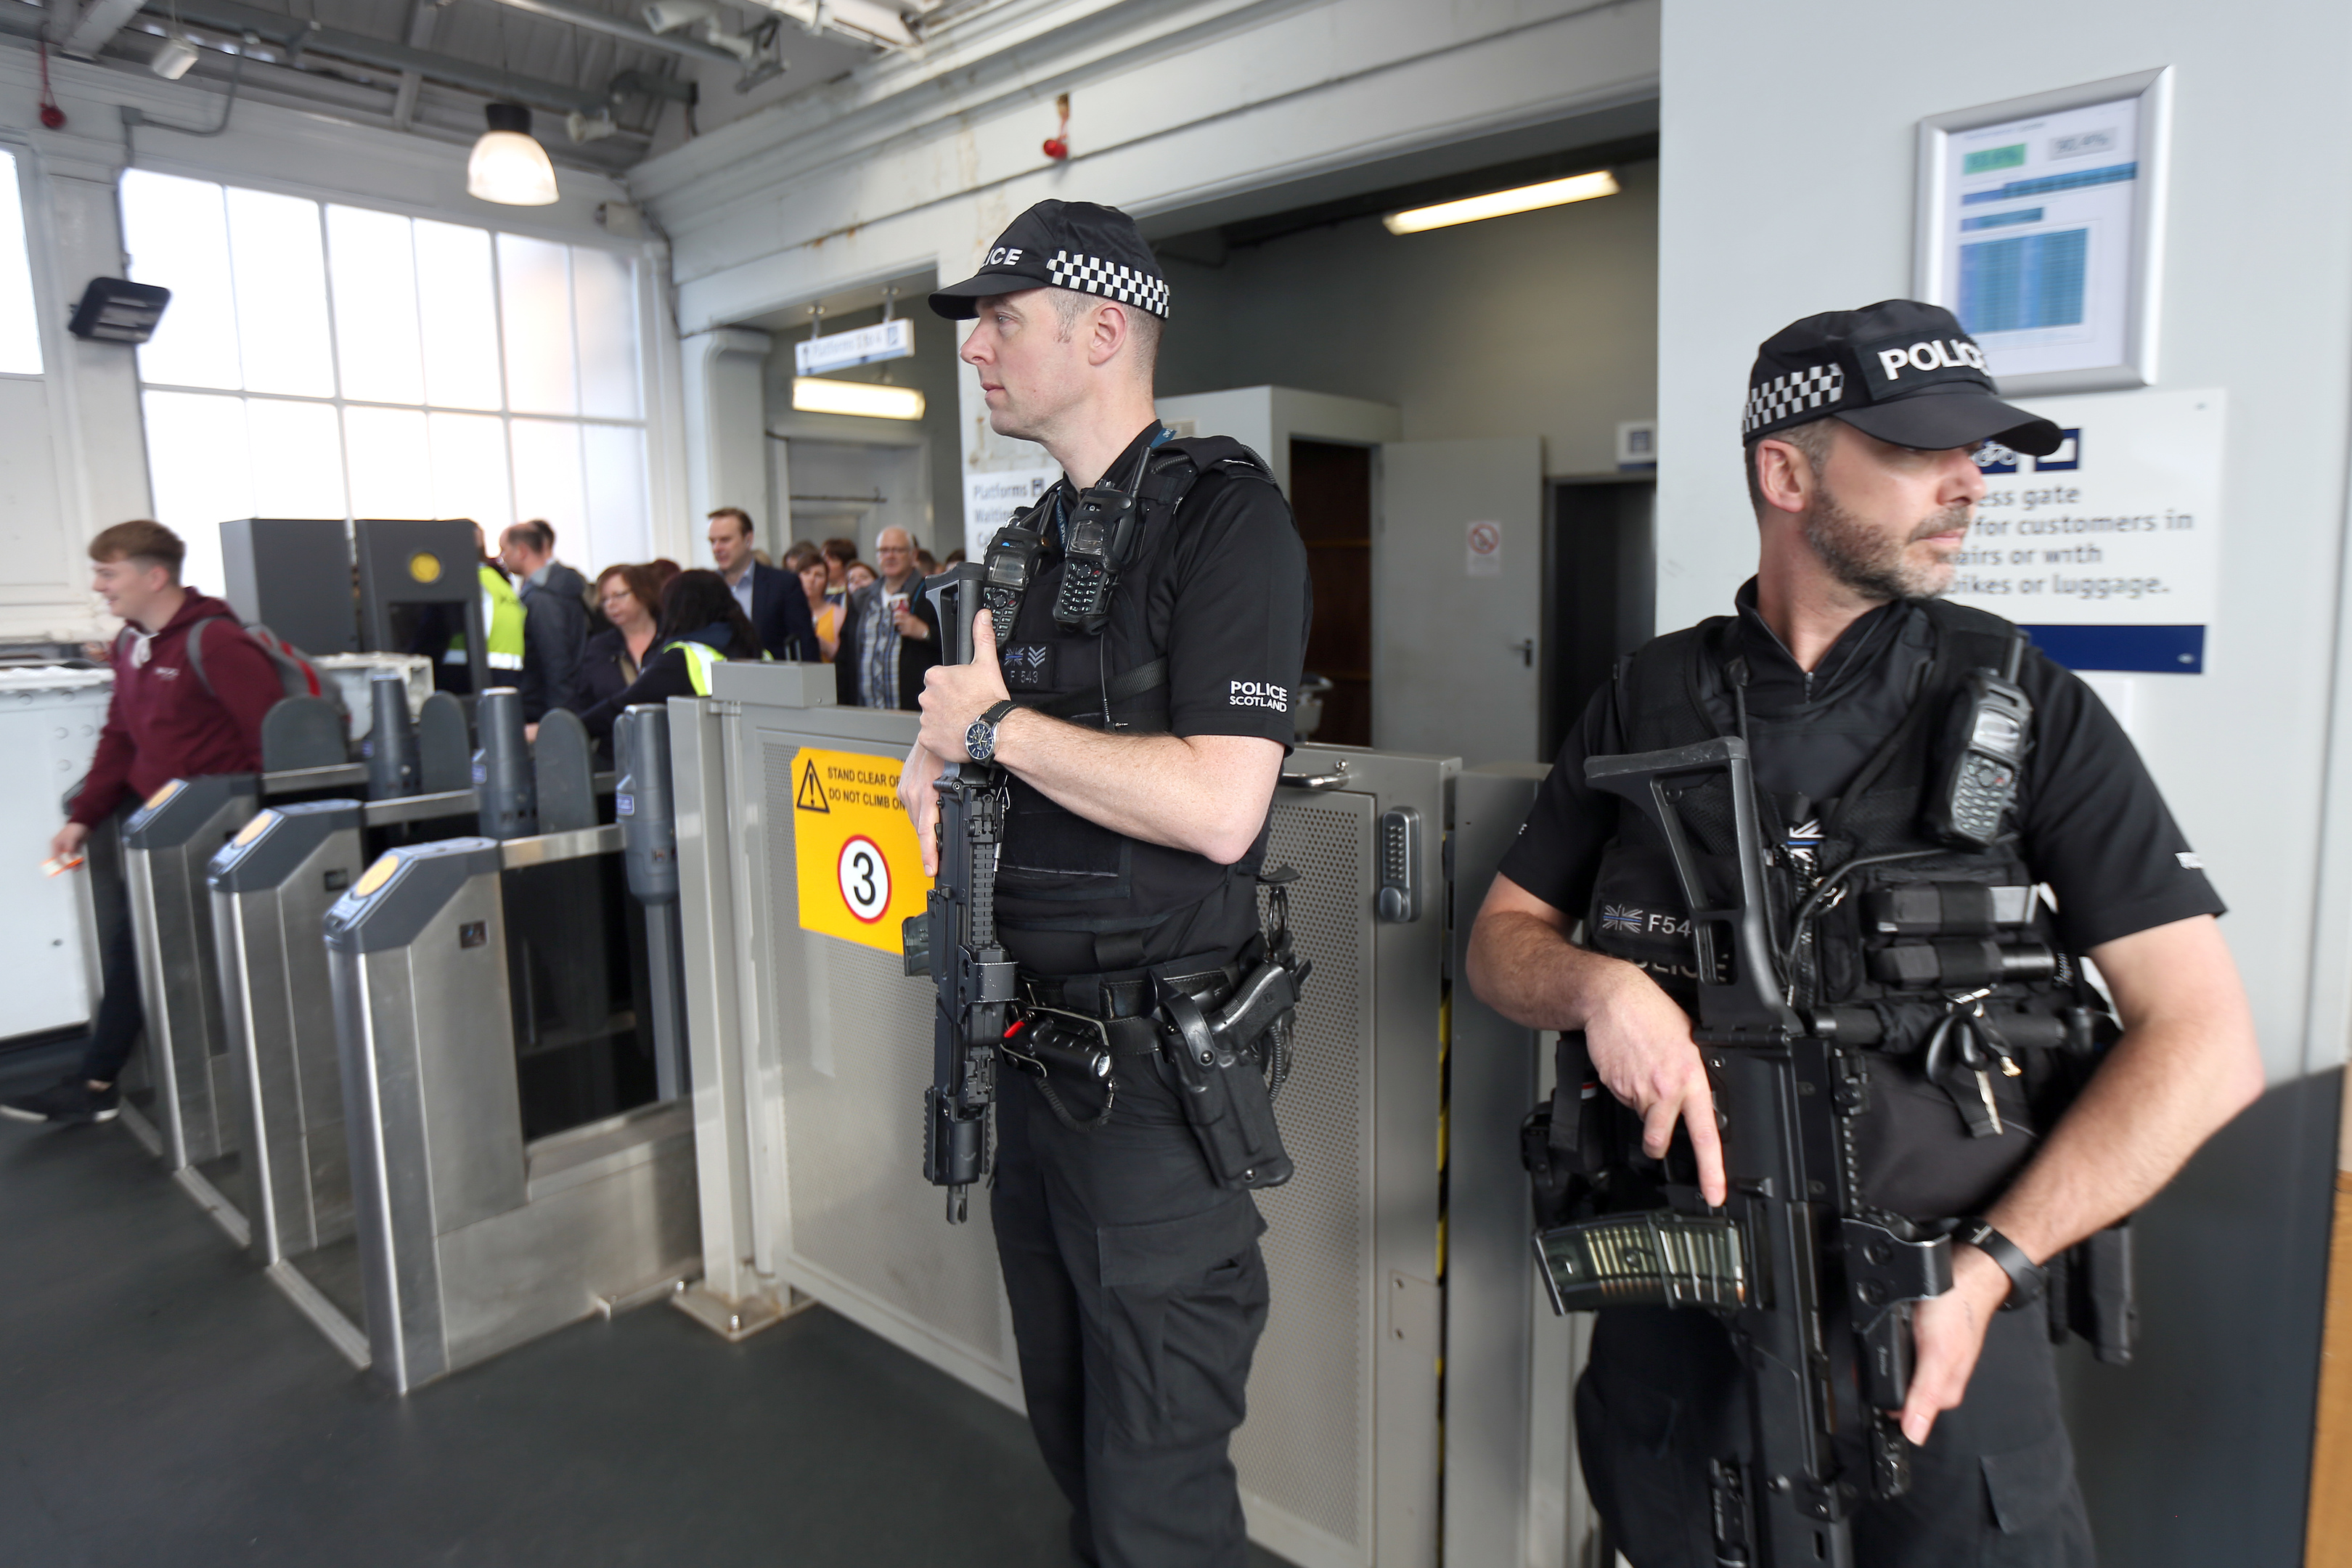 Armed police on guard as commuters arrive at Dundee railway station.